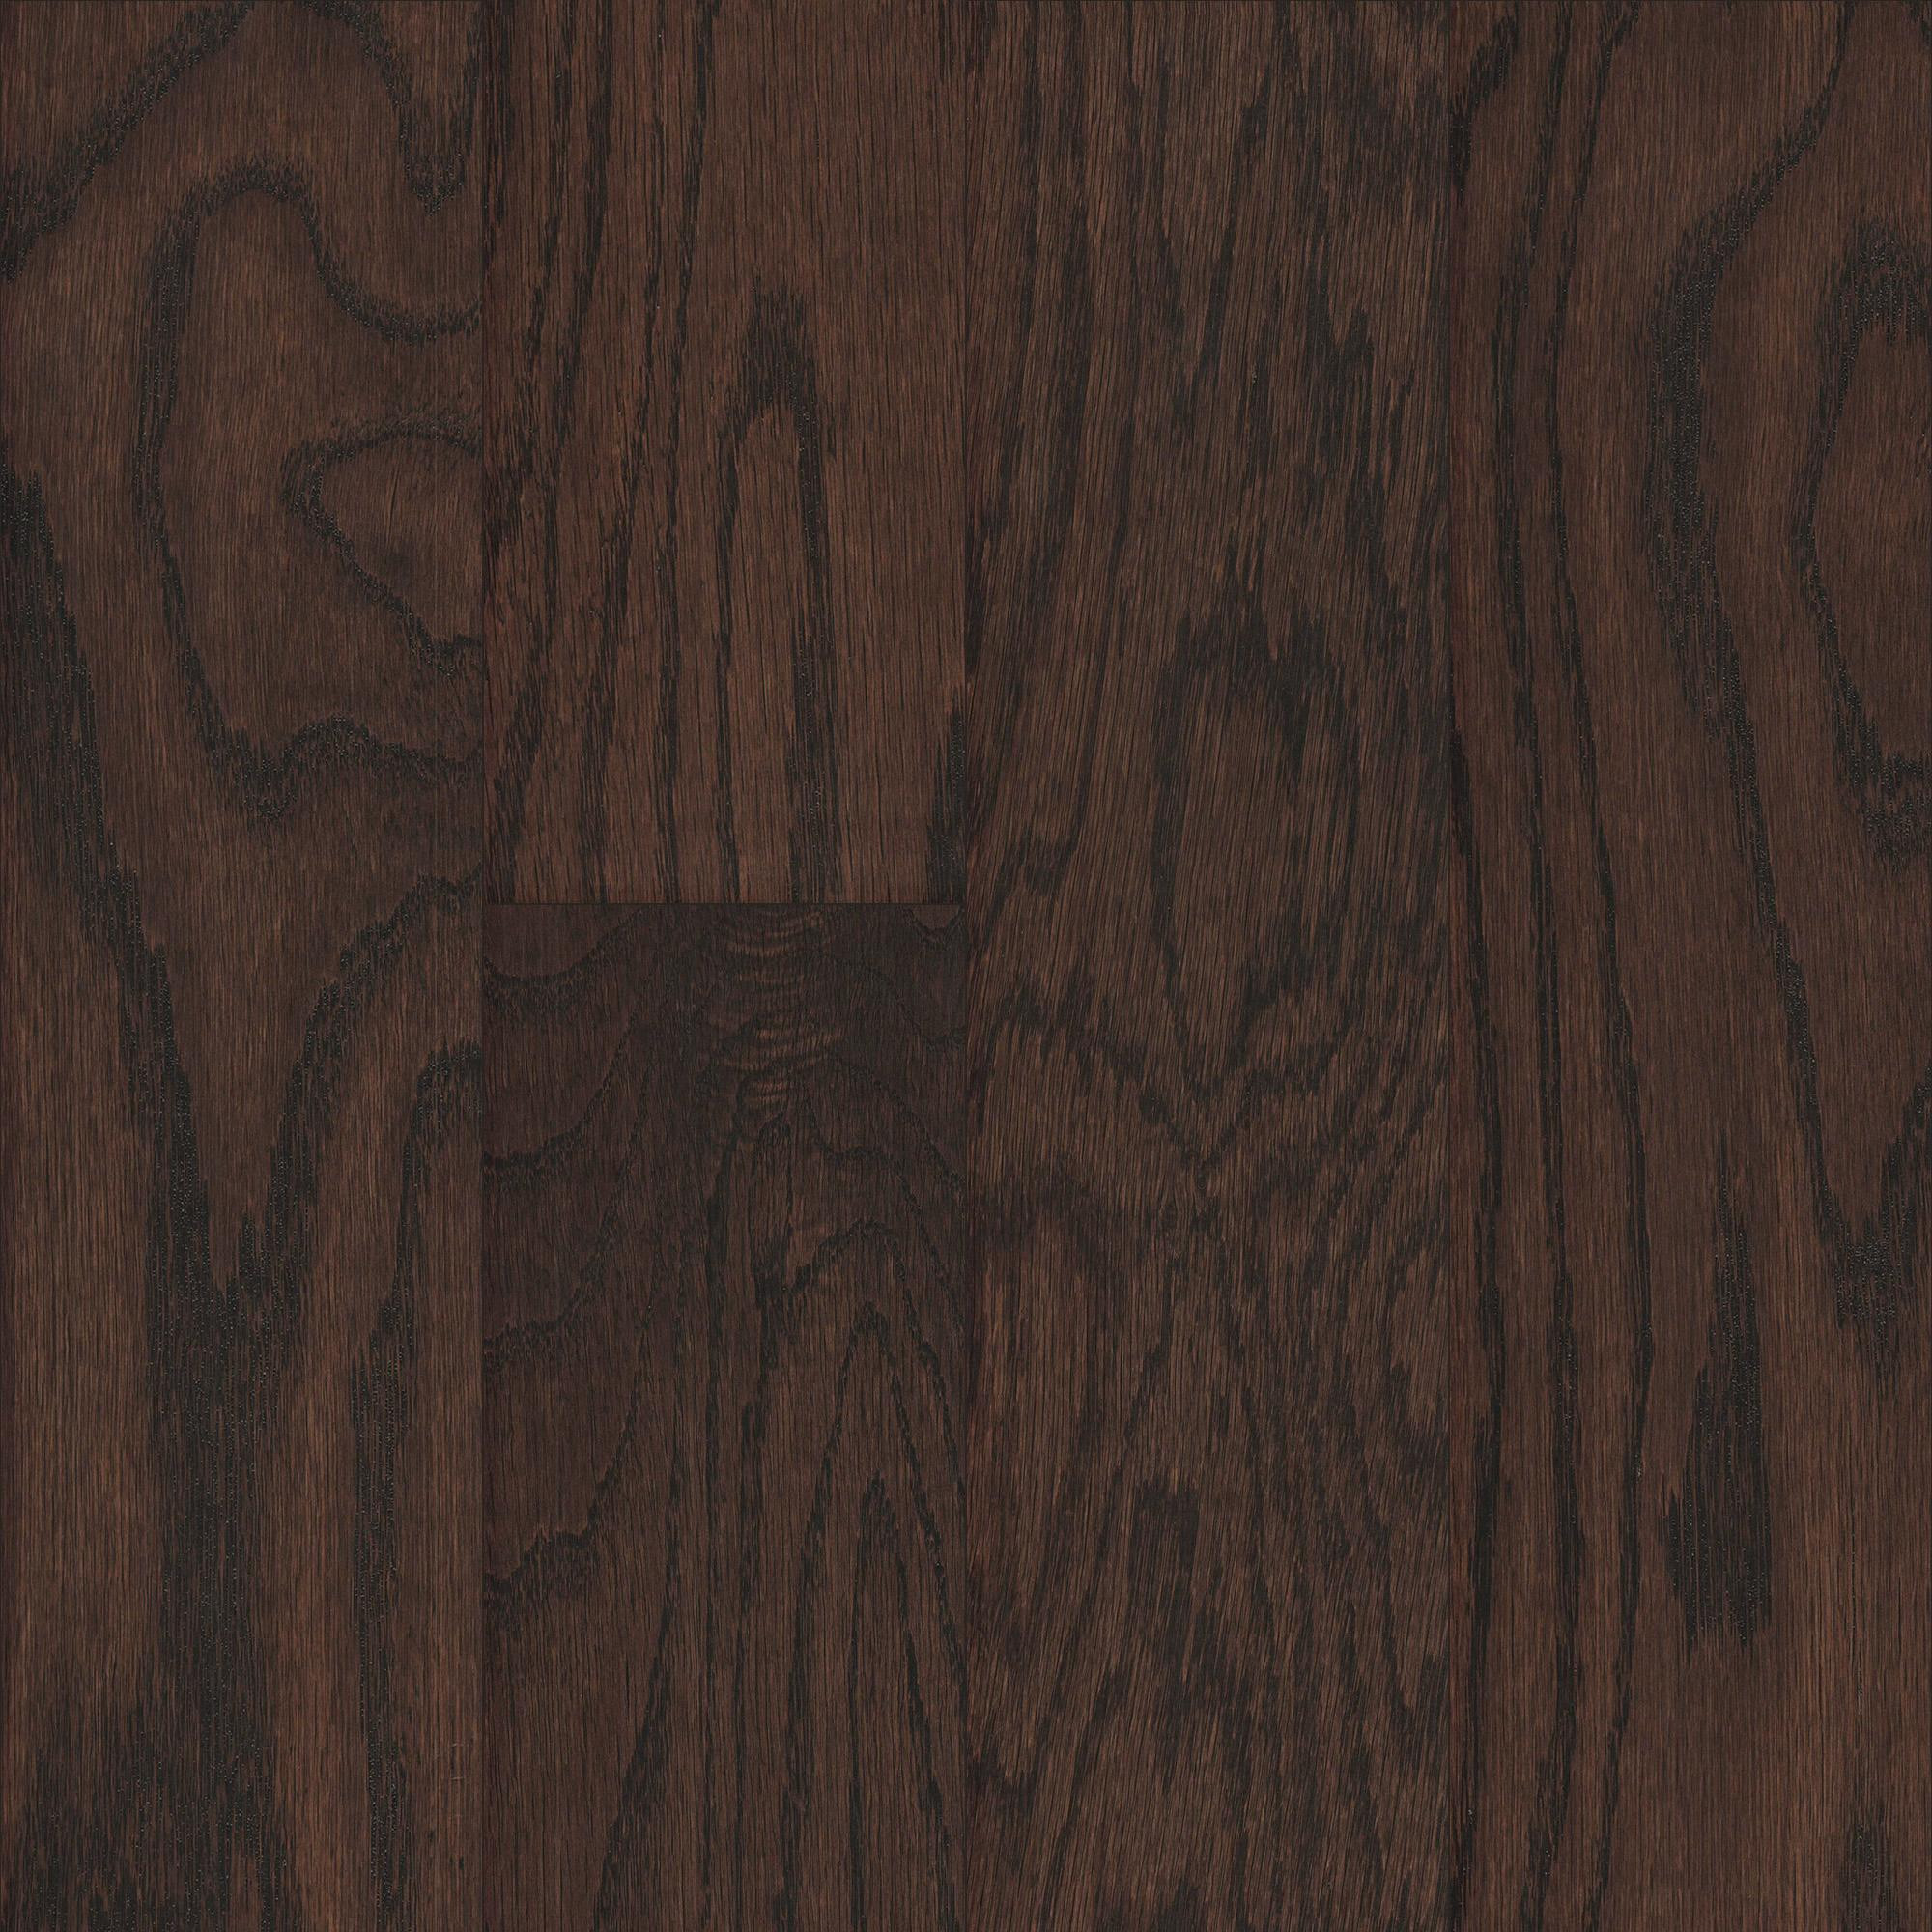 oak hardwood flooring colours of mullican ridgecrest oak burnt umber 1 2 thick 5 wide engineered inside mullican ridgecrest oak burnt umber 1 2 thick 5 wide engineered hardwood flooring